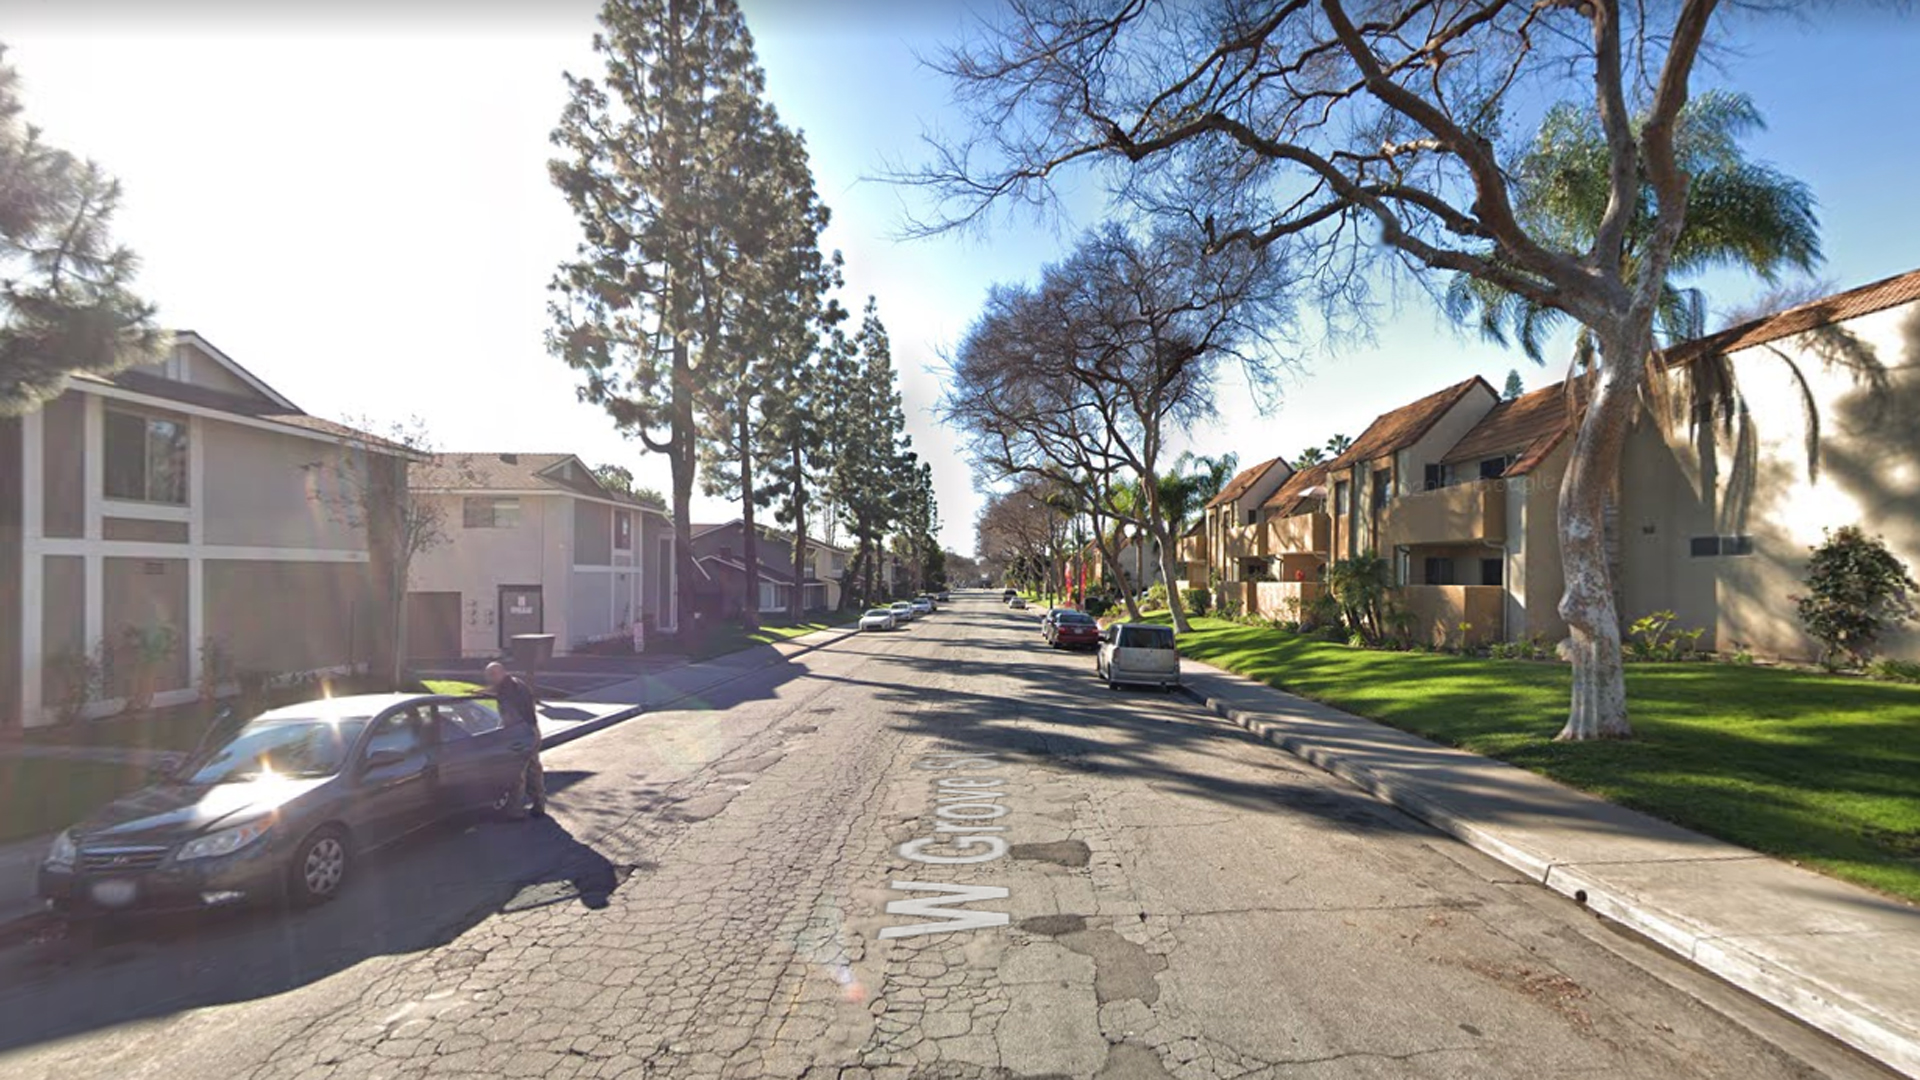 The 200 block of West Grove Street in Pomona, as viewed in a Google Street View image in February of 2019.